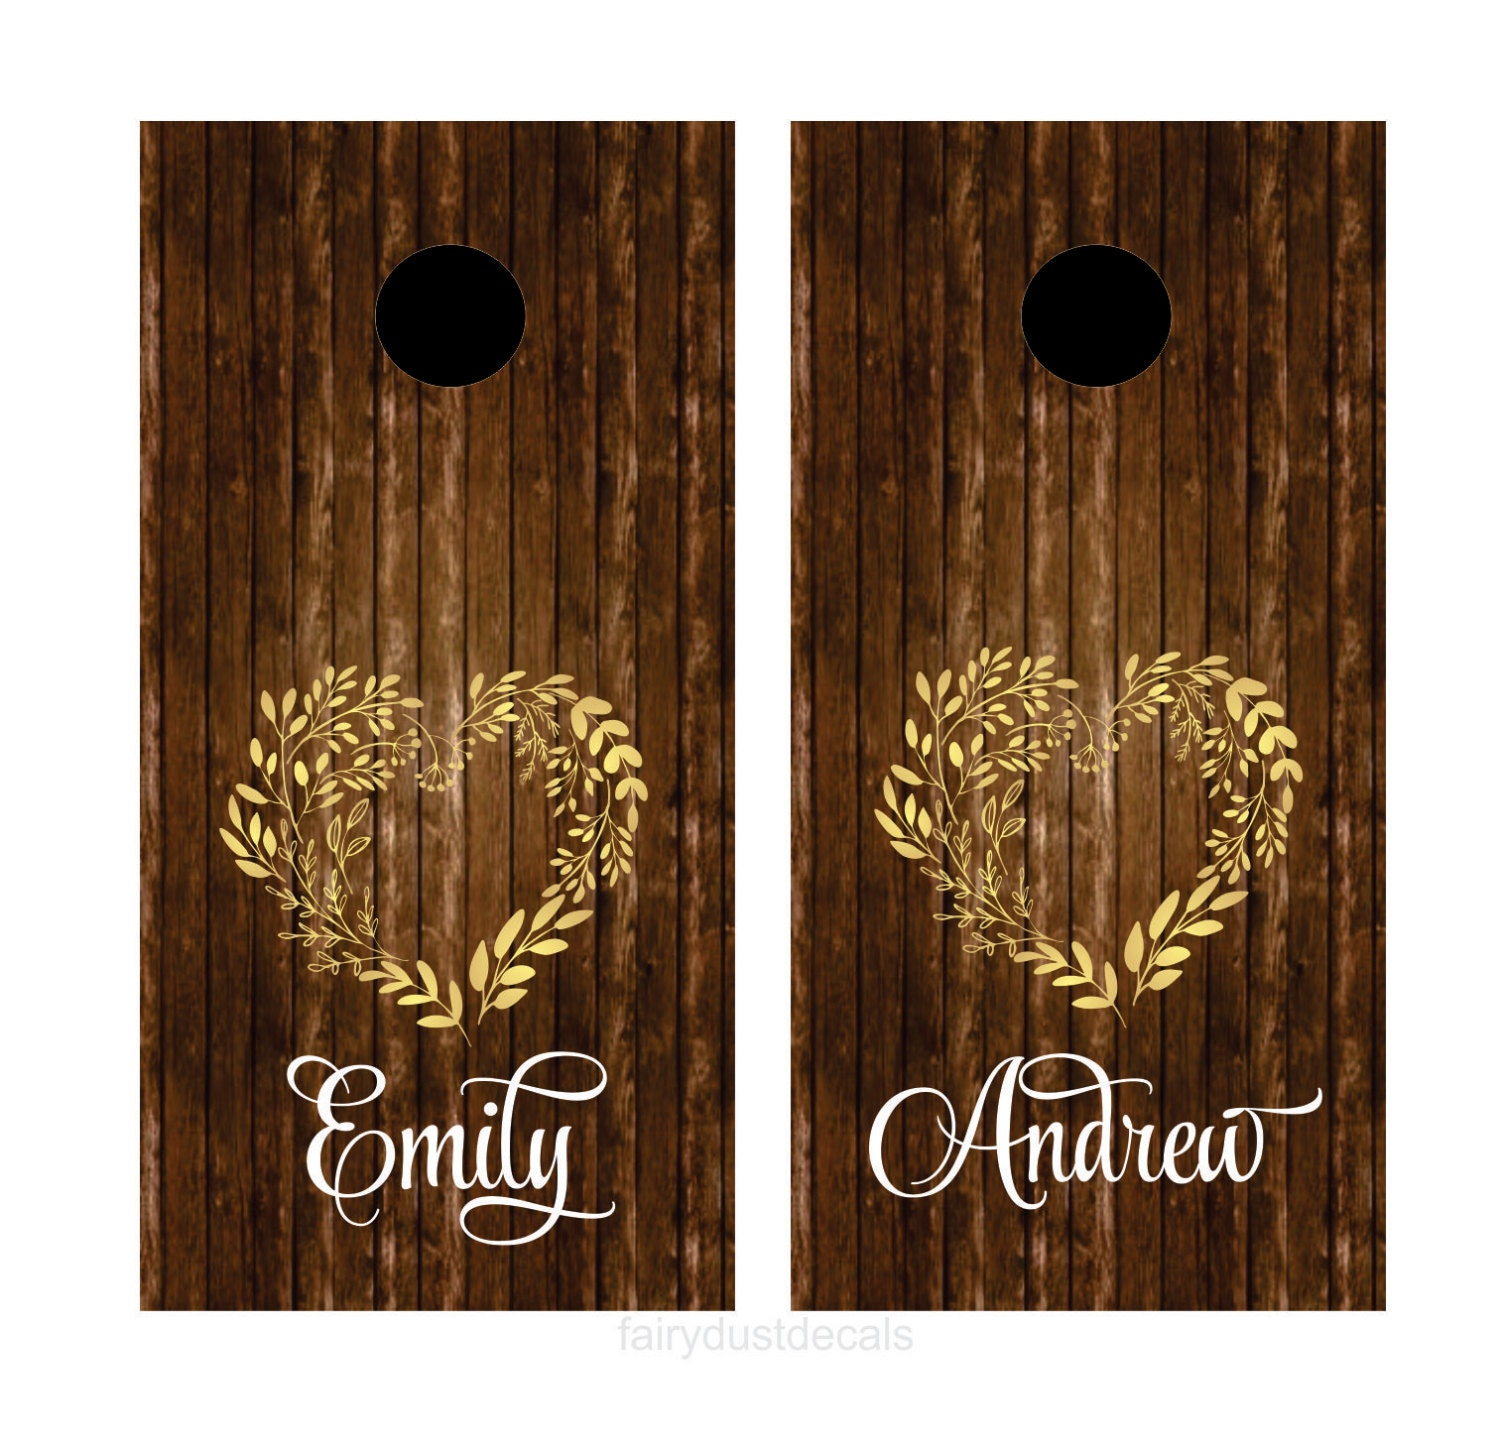 Wedding Decals Cornhole Board Set Yard Game Sticker Set